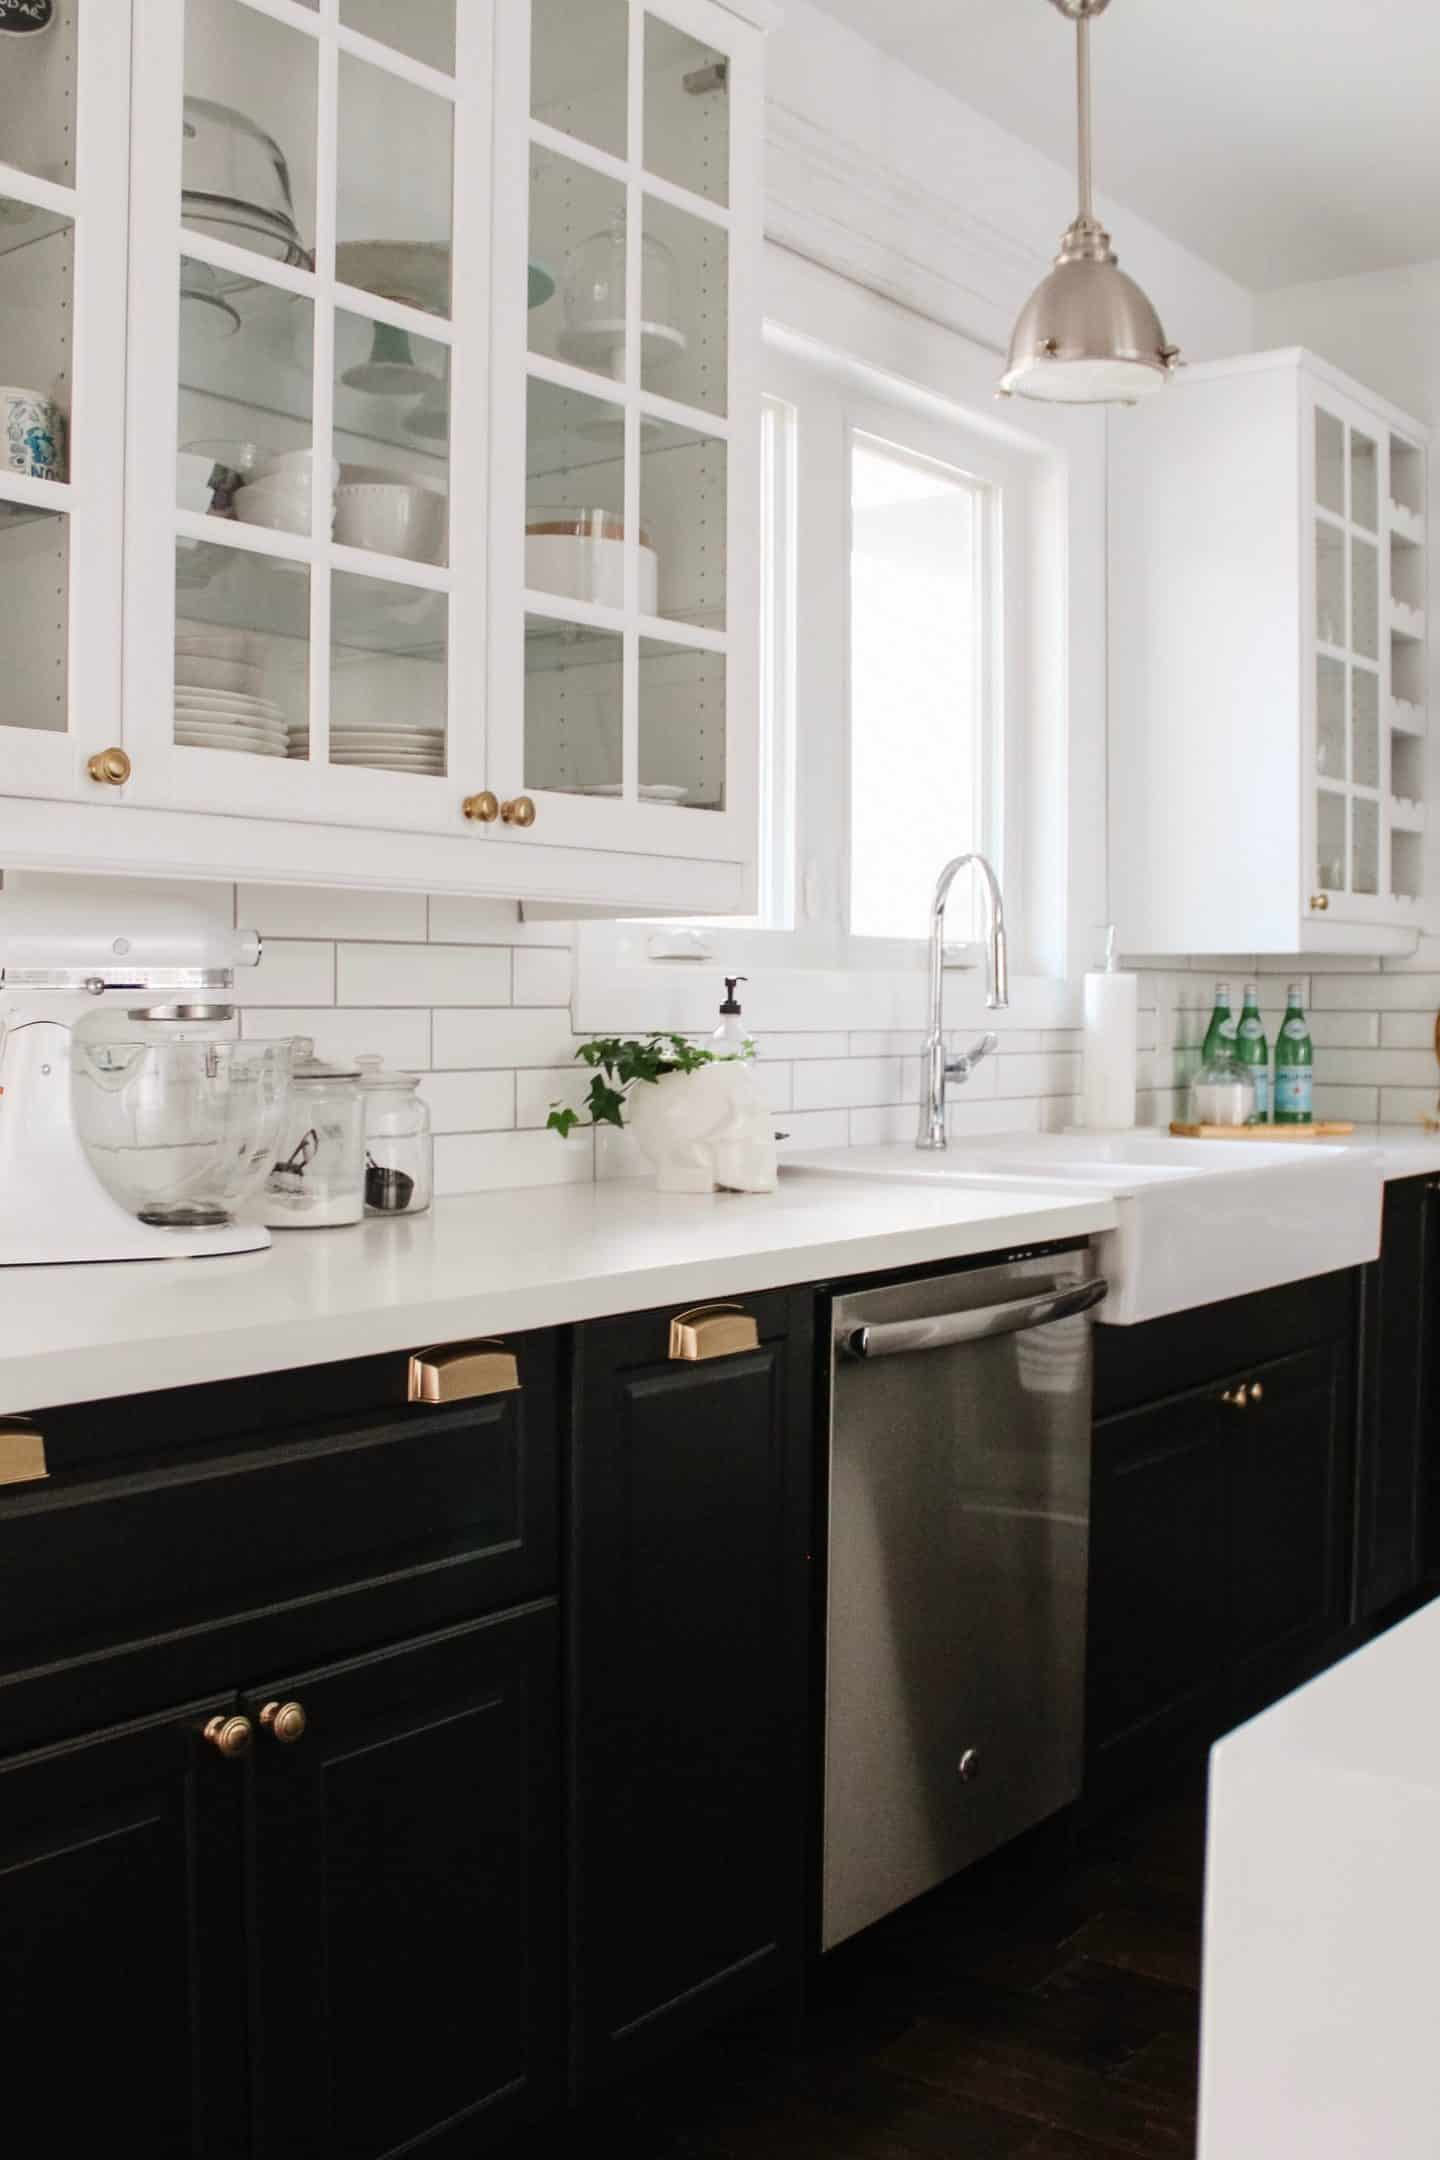 Looking for a Kitchen Refresh? So was Skye Cecilia! She Used Schaub and Company Hardware to Complete the Look